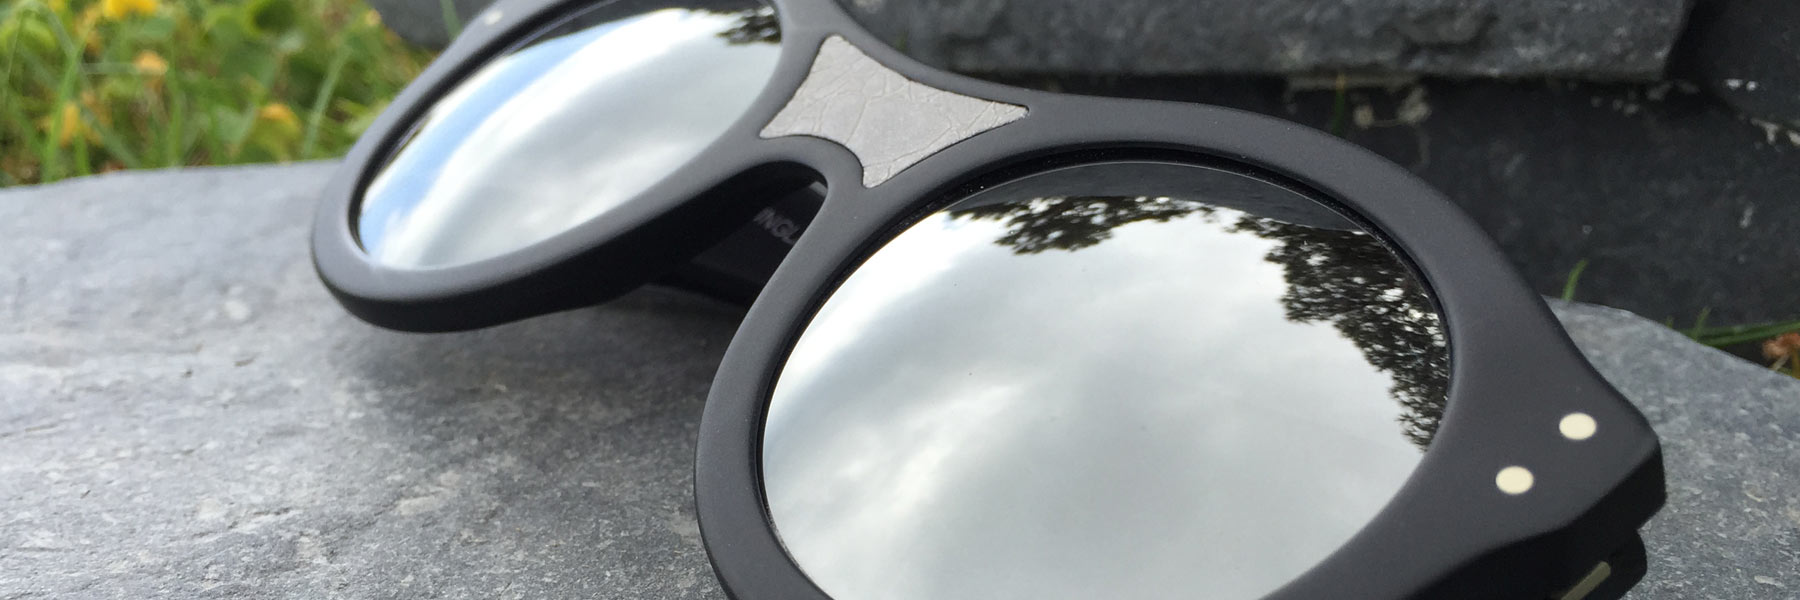 Wilde-Sunglasses-EXODUS-new-Collection-Barcelona_madrid_handcrafted_best_atore_3.jpg